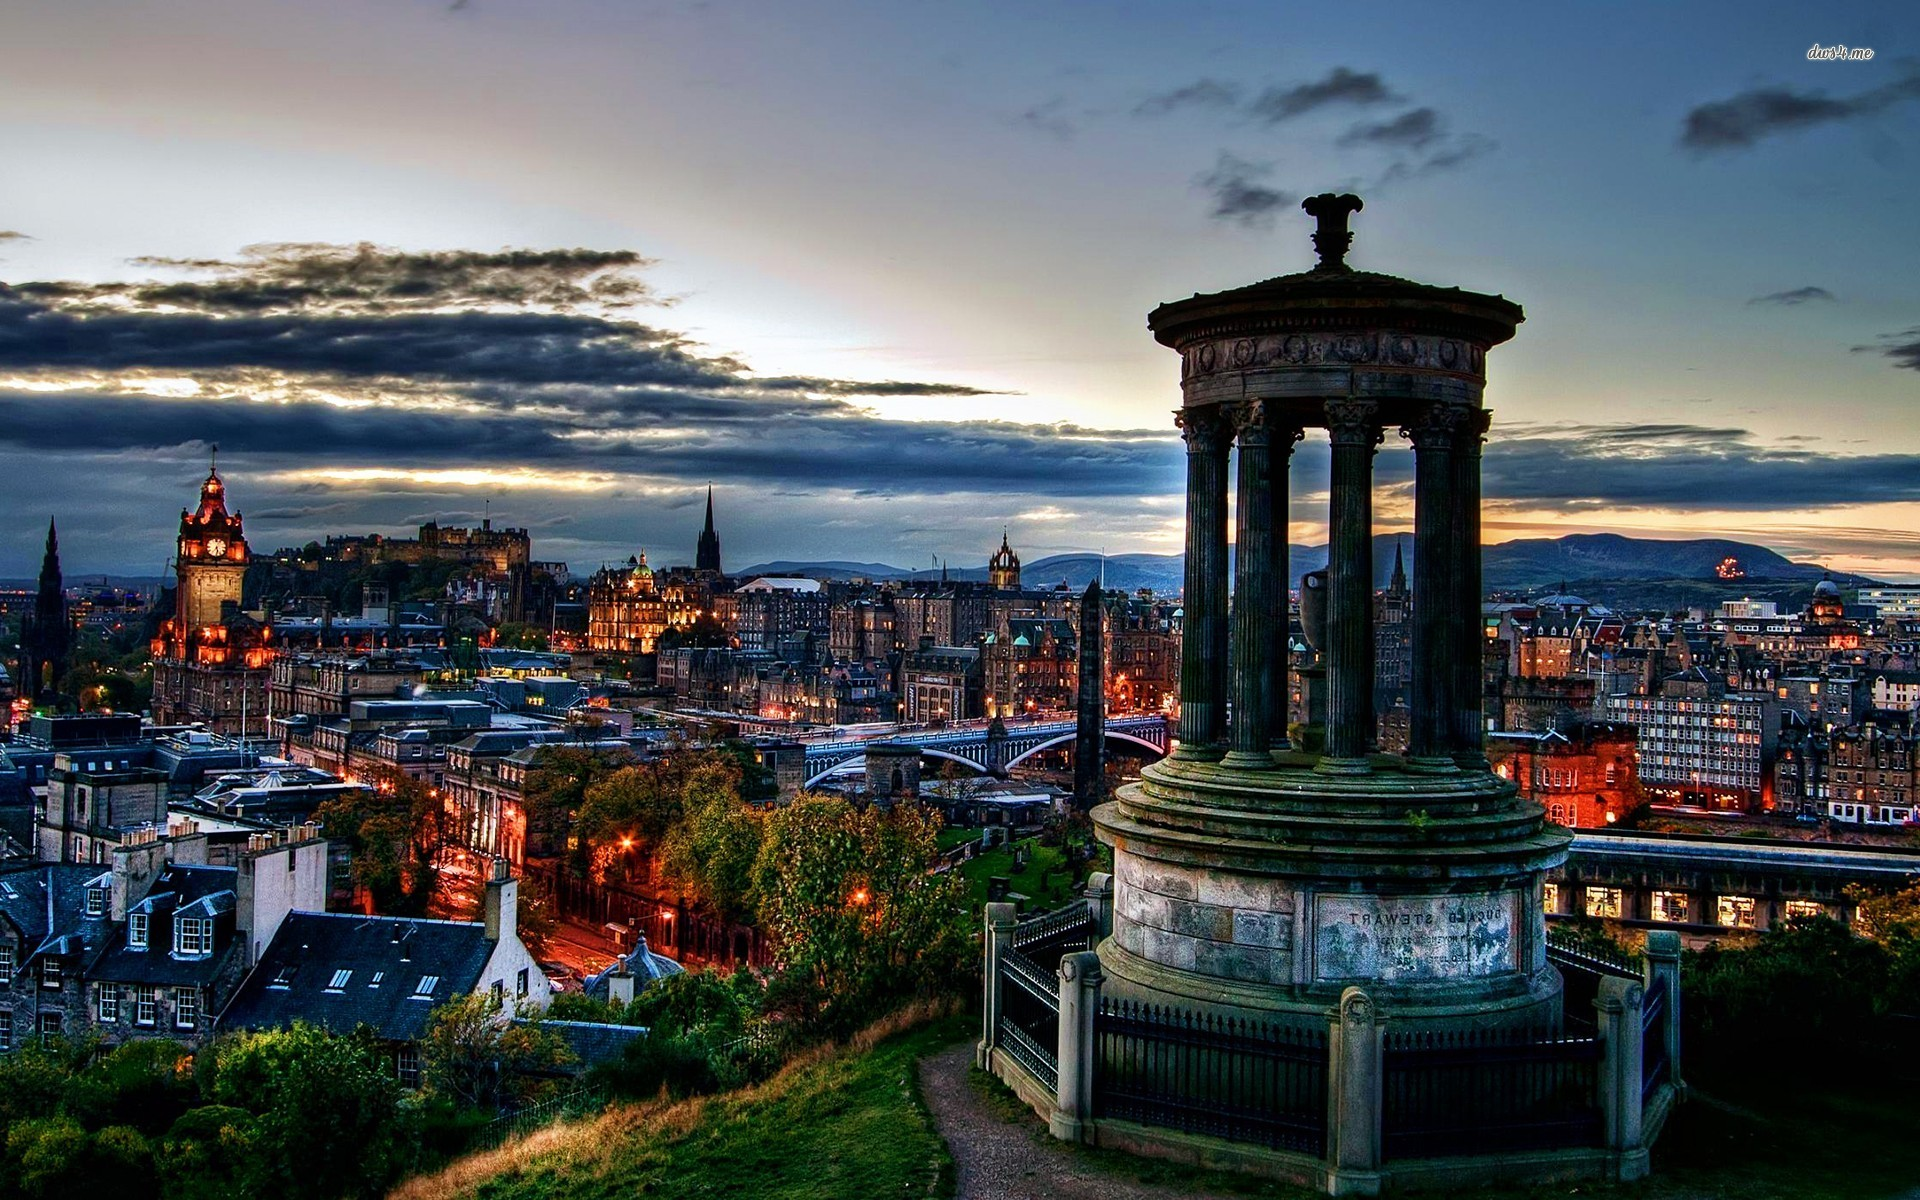 edinburgh scotland wallpaper - photo #18